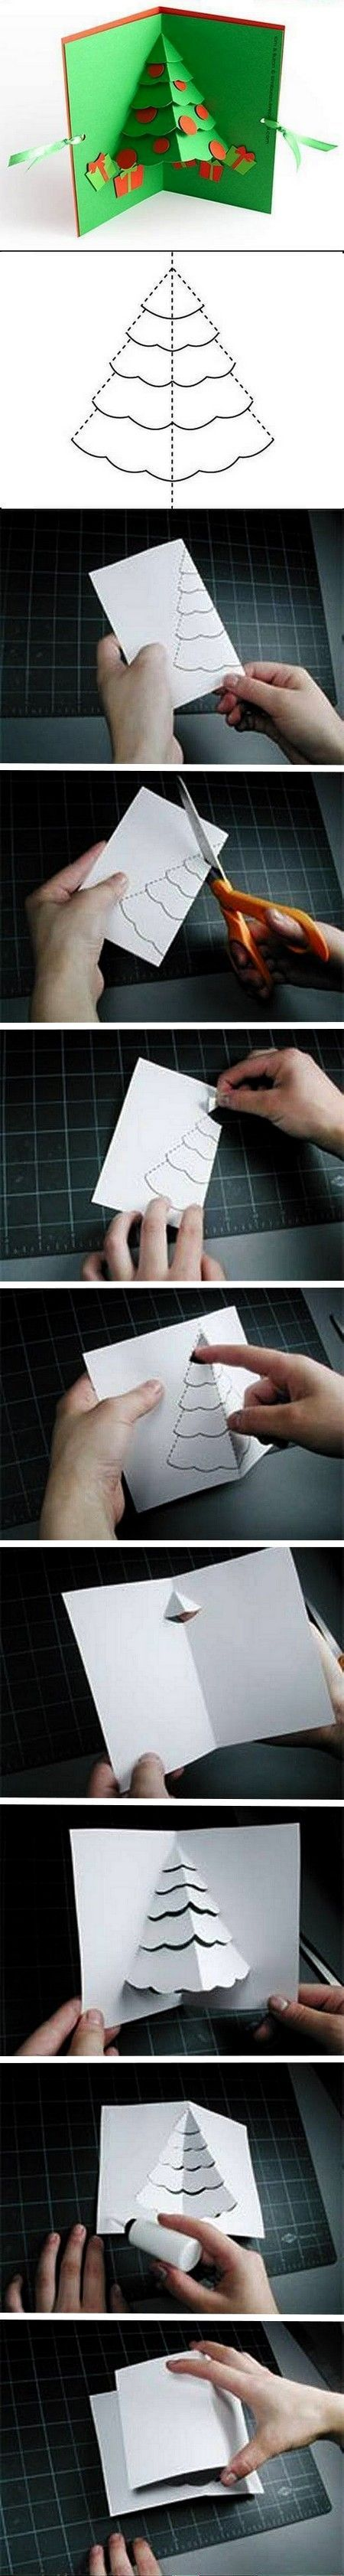 By Robert Sabuda     You can see more detailed instructions at Robert's webpage. WikiHow also has a great tutorial with gifs showing you how to make this pop-up card.   XOXO Frida   Keywords: DIY, ...